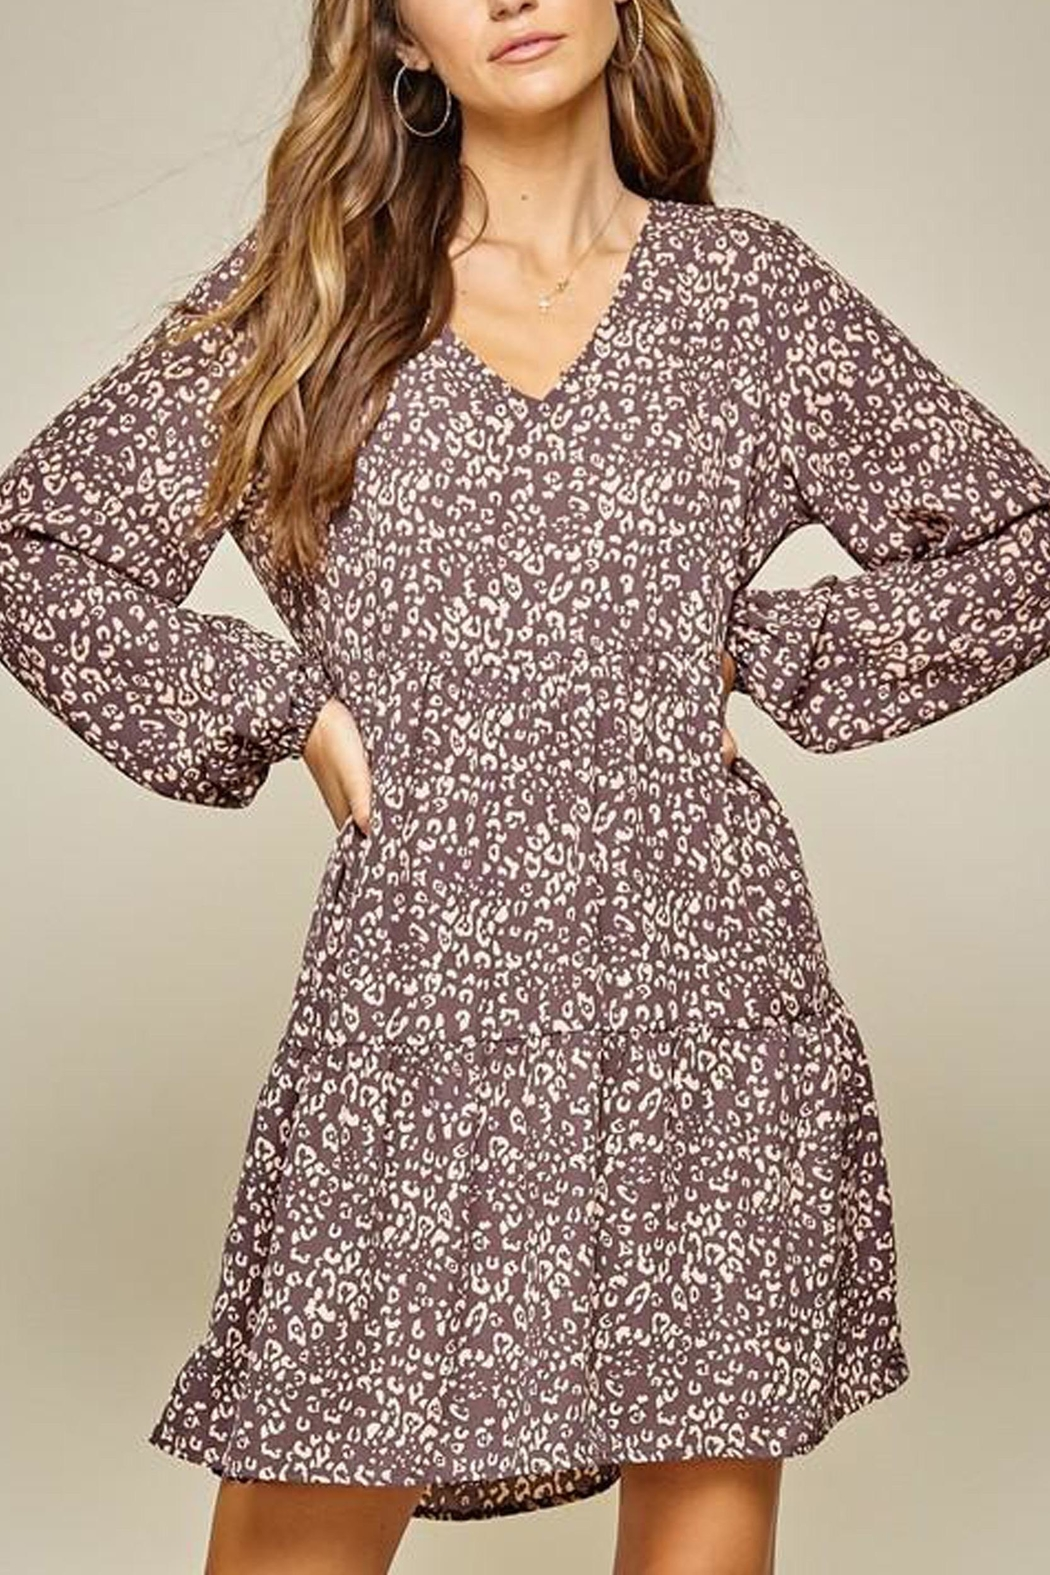 Andree by Unit Leopard Tiered Shift-Dress - Front Full Image